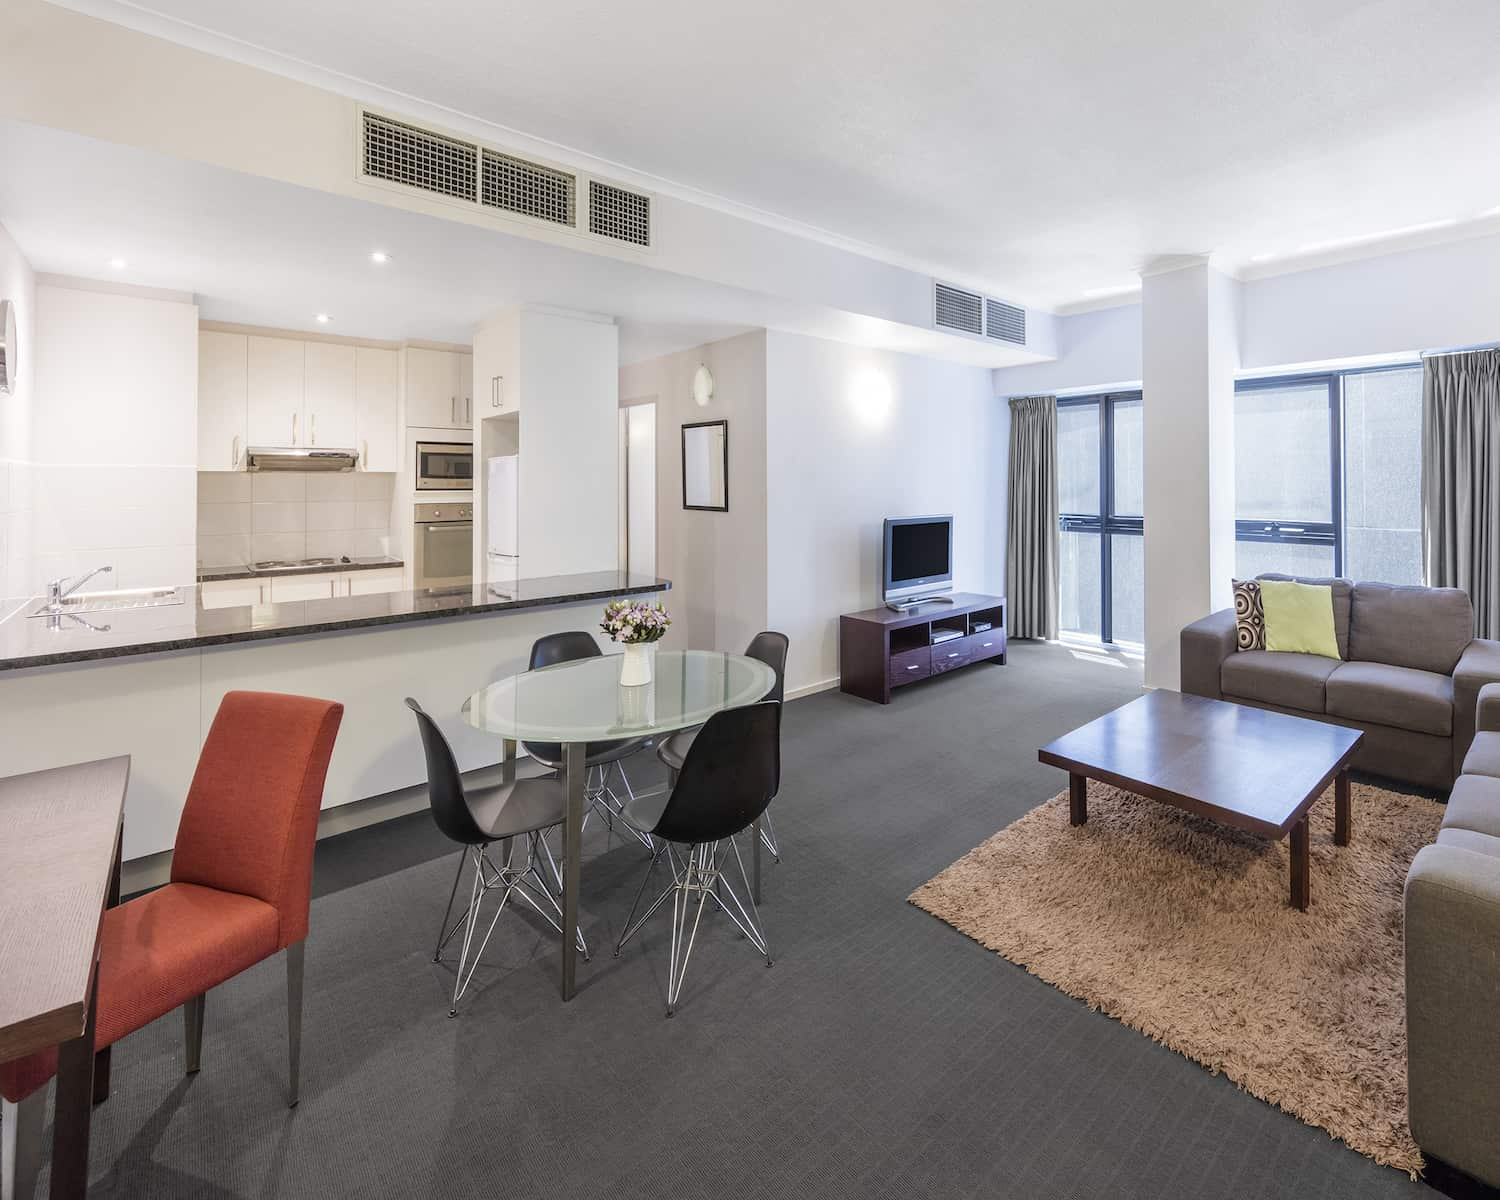 riverside apartments melbourne vic accommodation two bedroom standard apartment 1